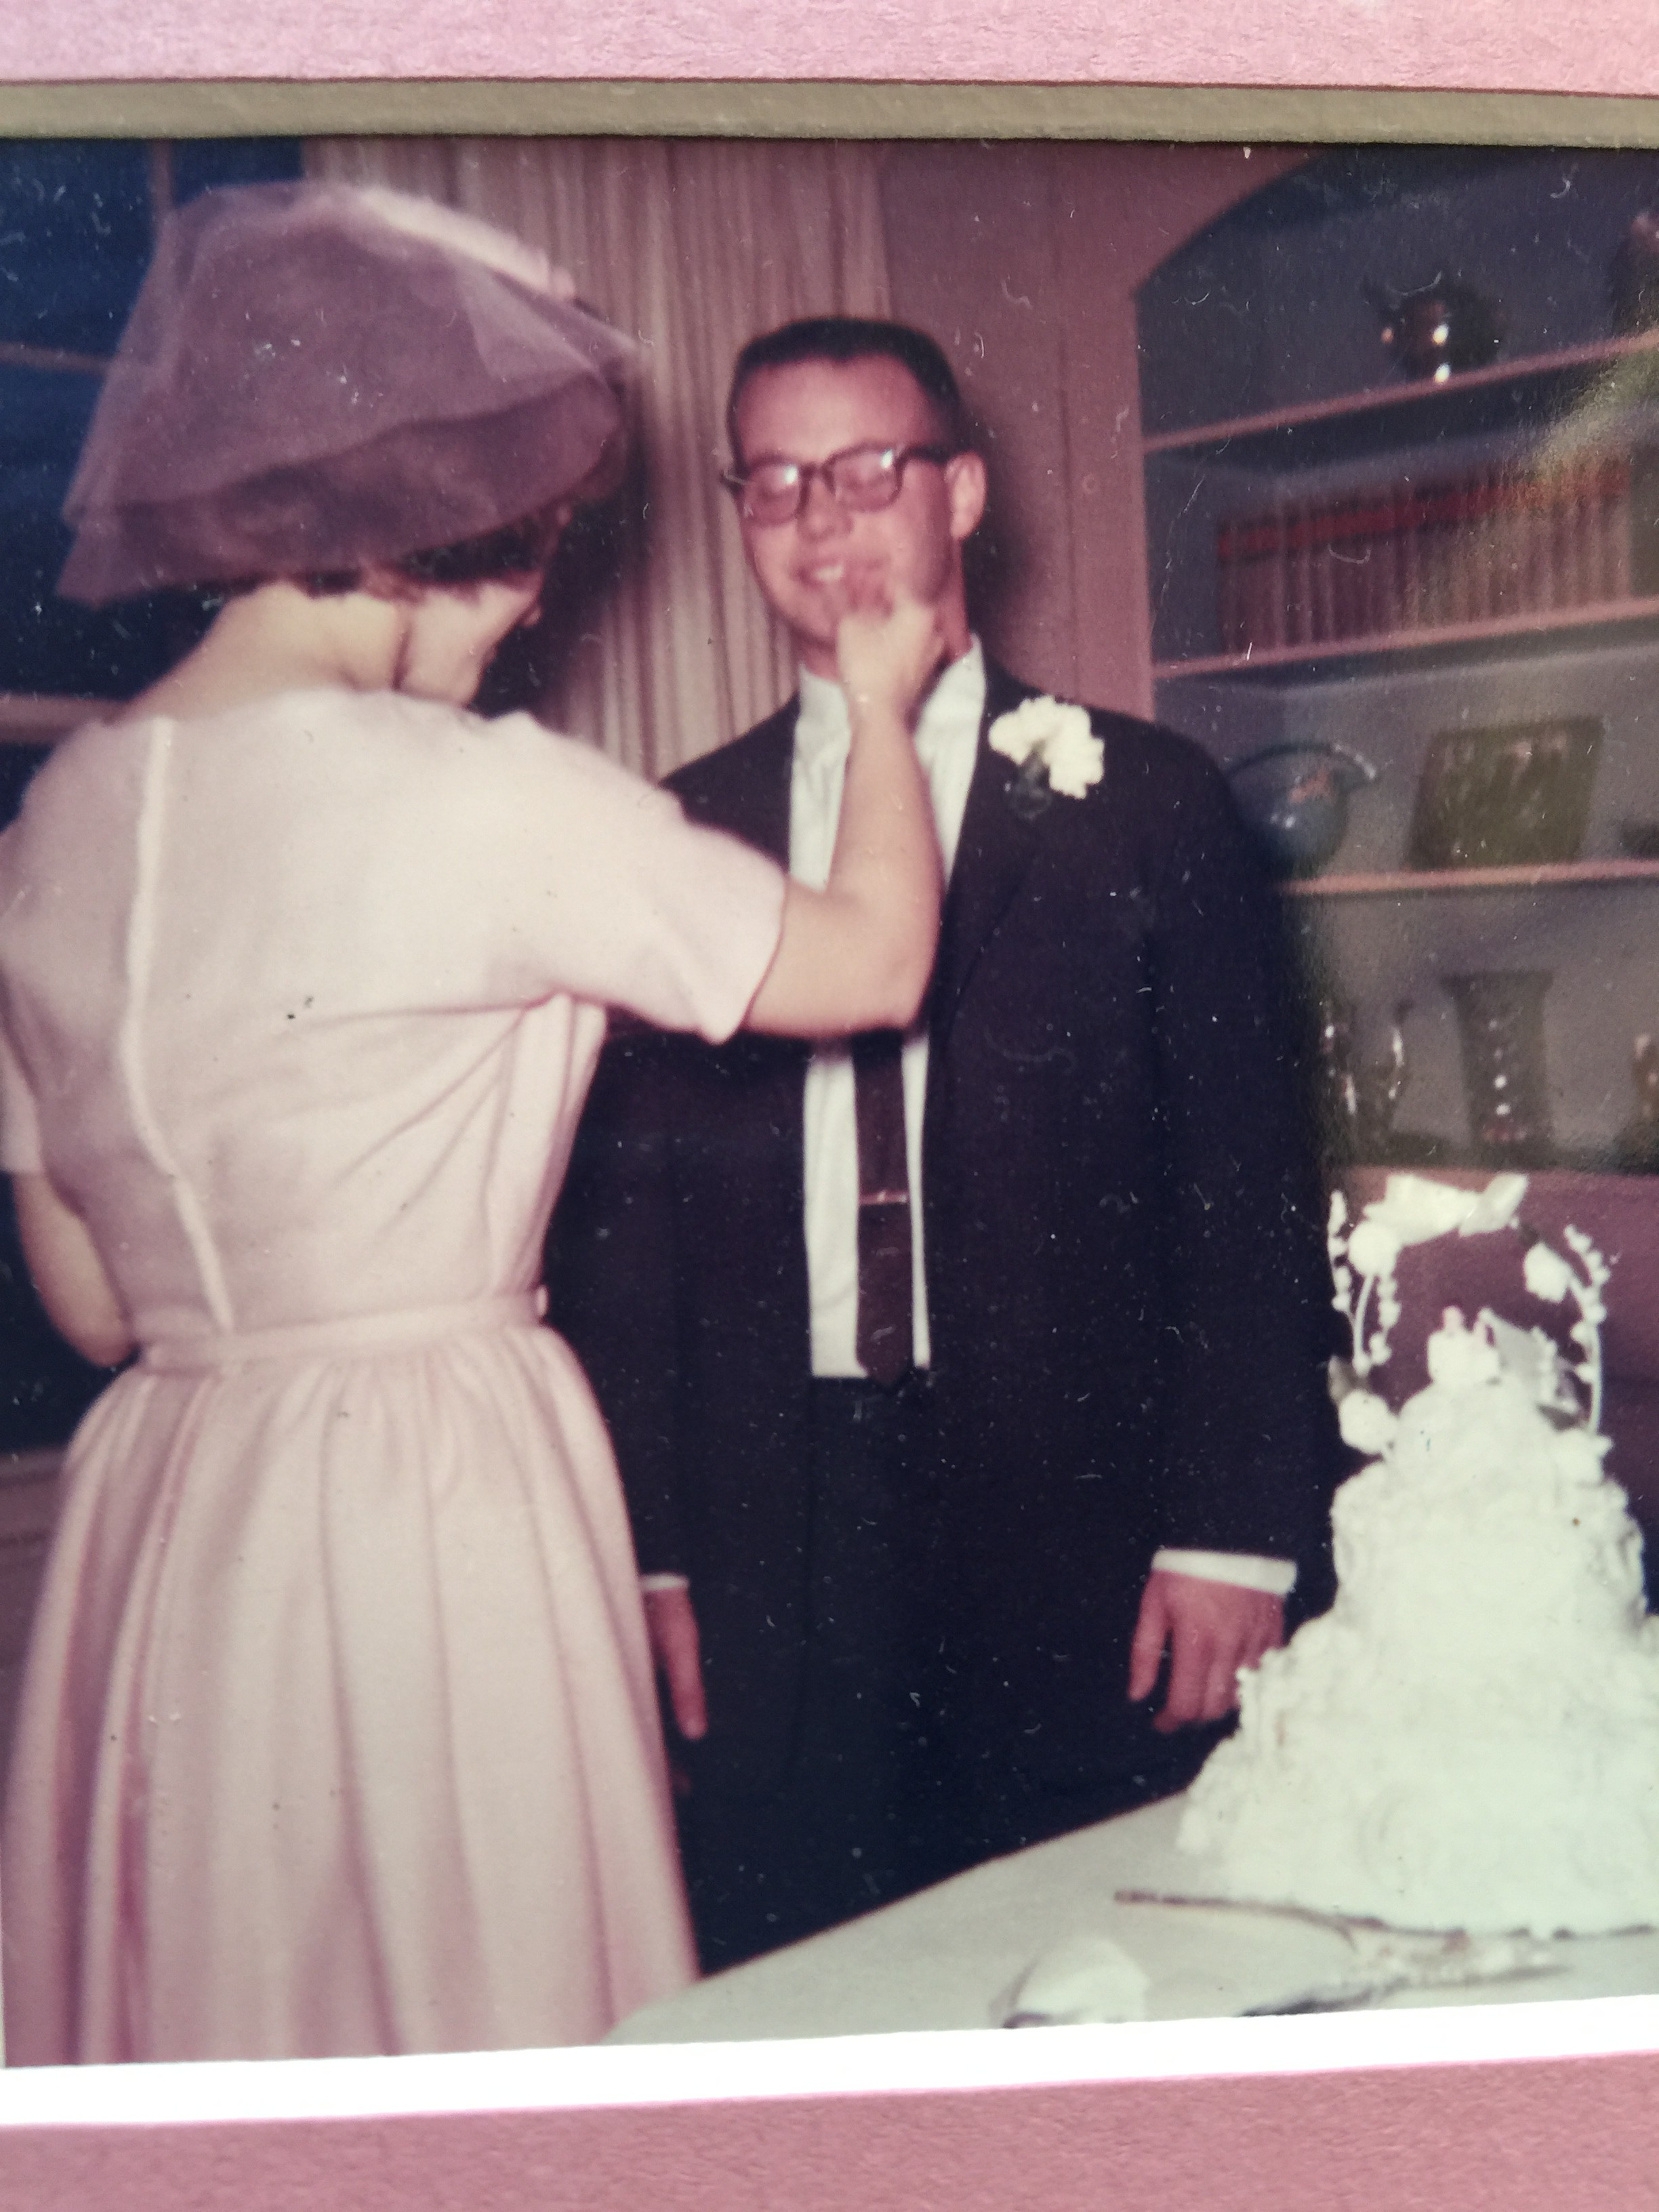 Those were the days--February 10, 1963. Now she does not let me eat cake.